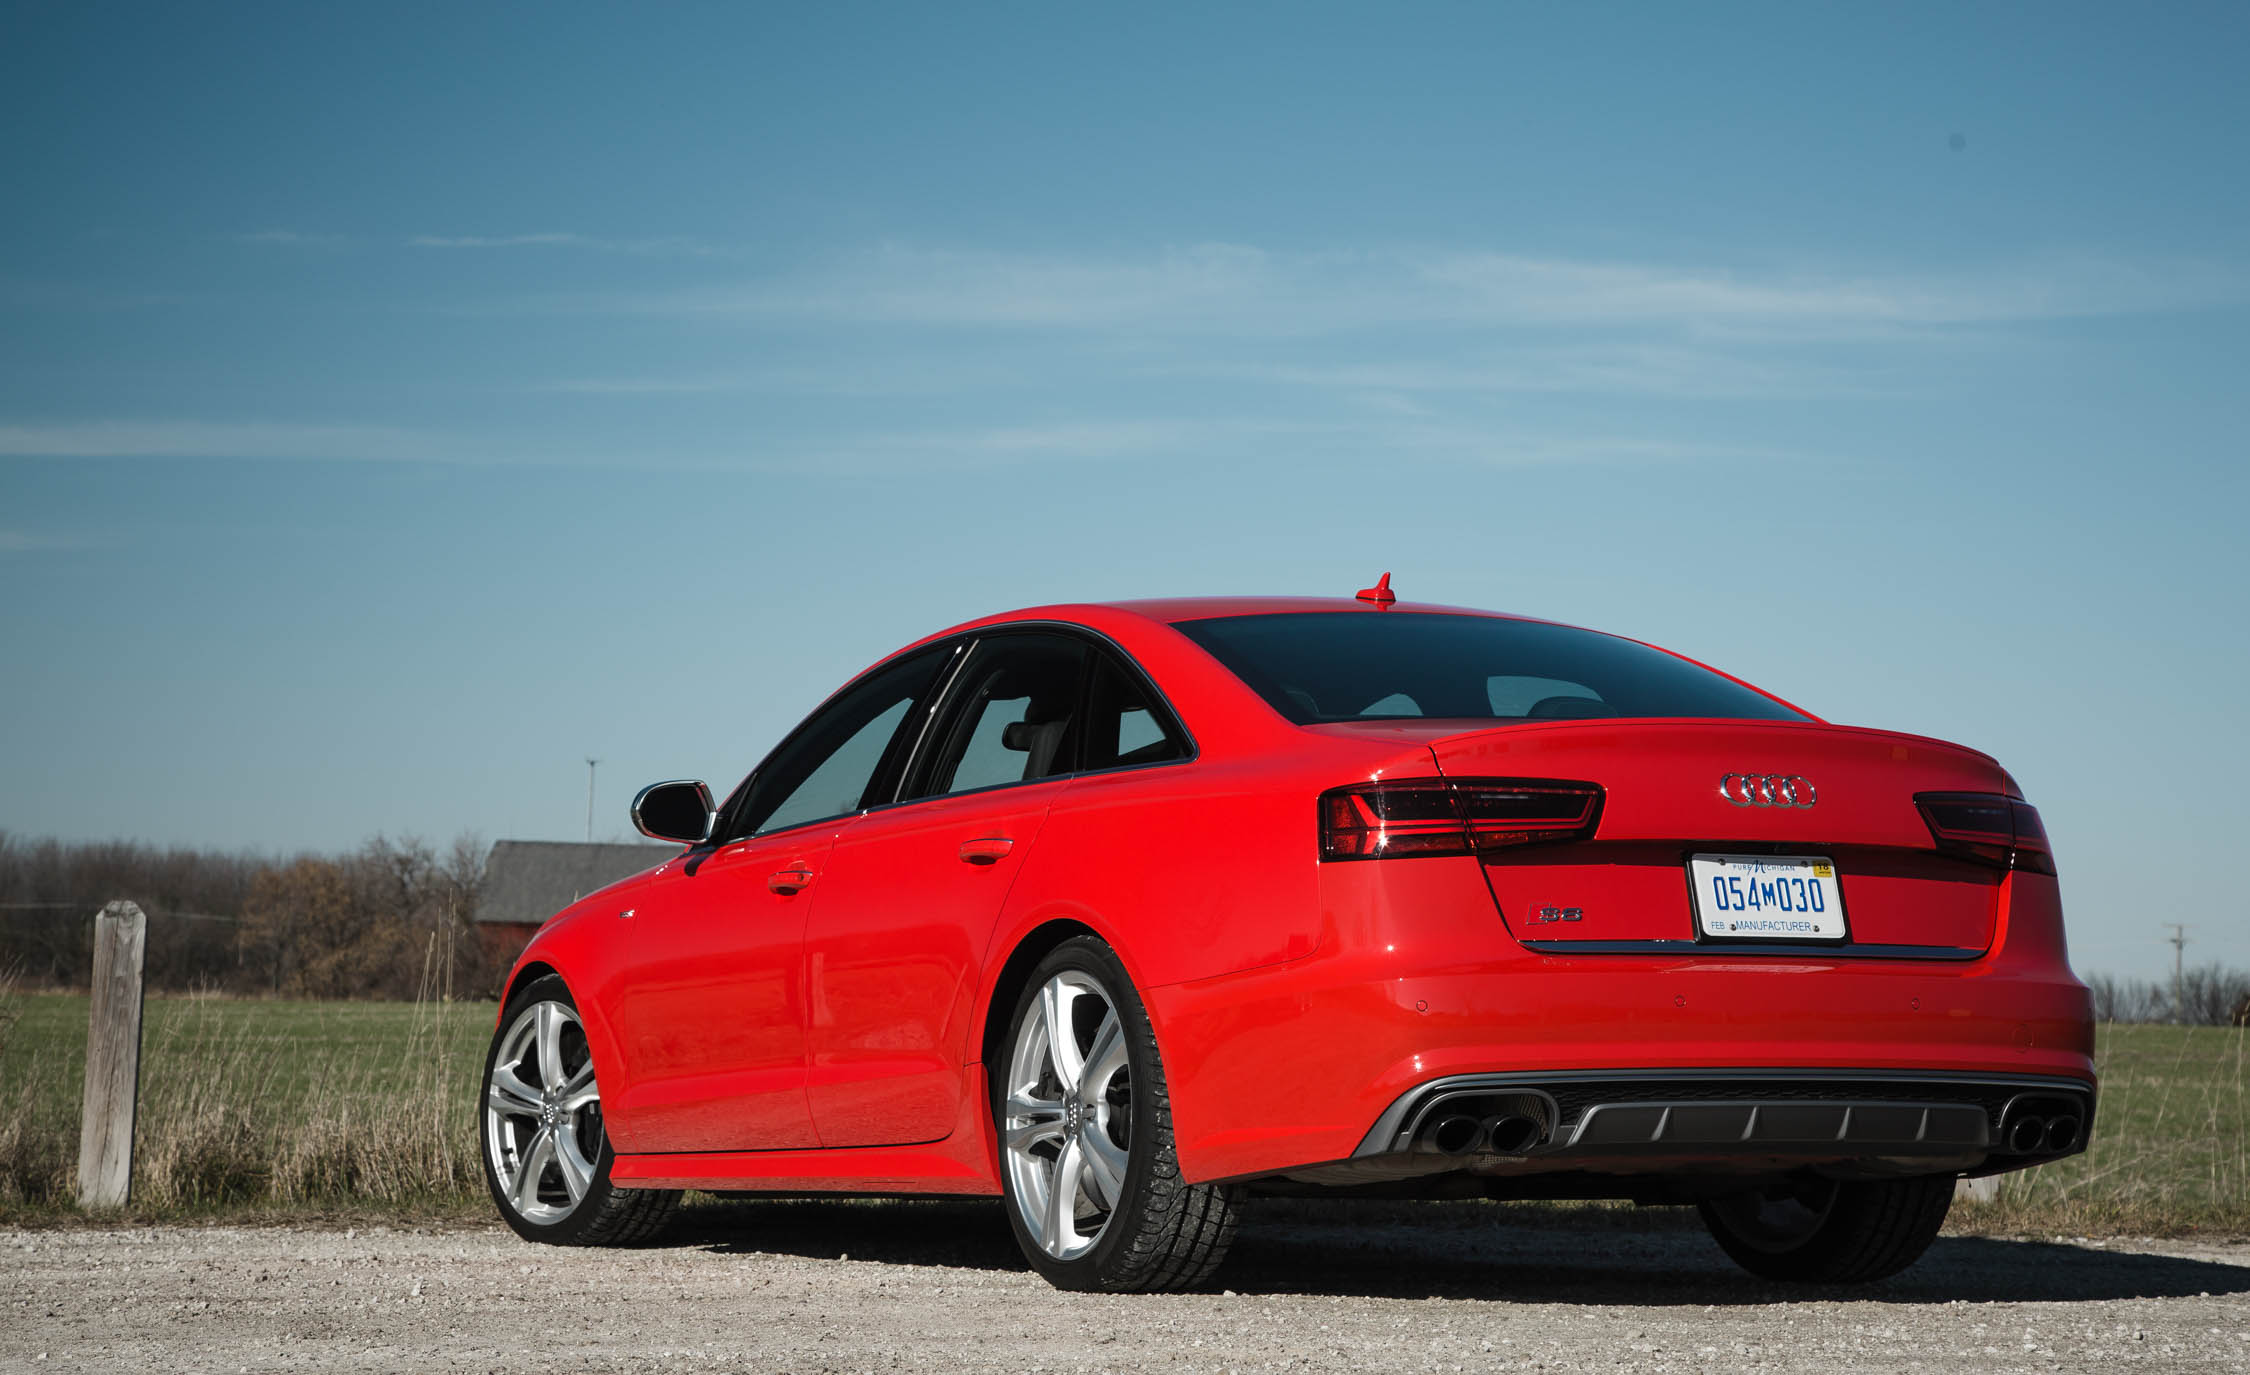 2016 Audi S6 Exterior Full Side and Rear